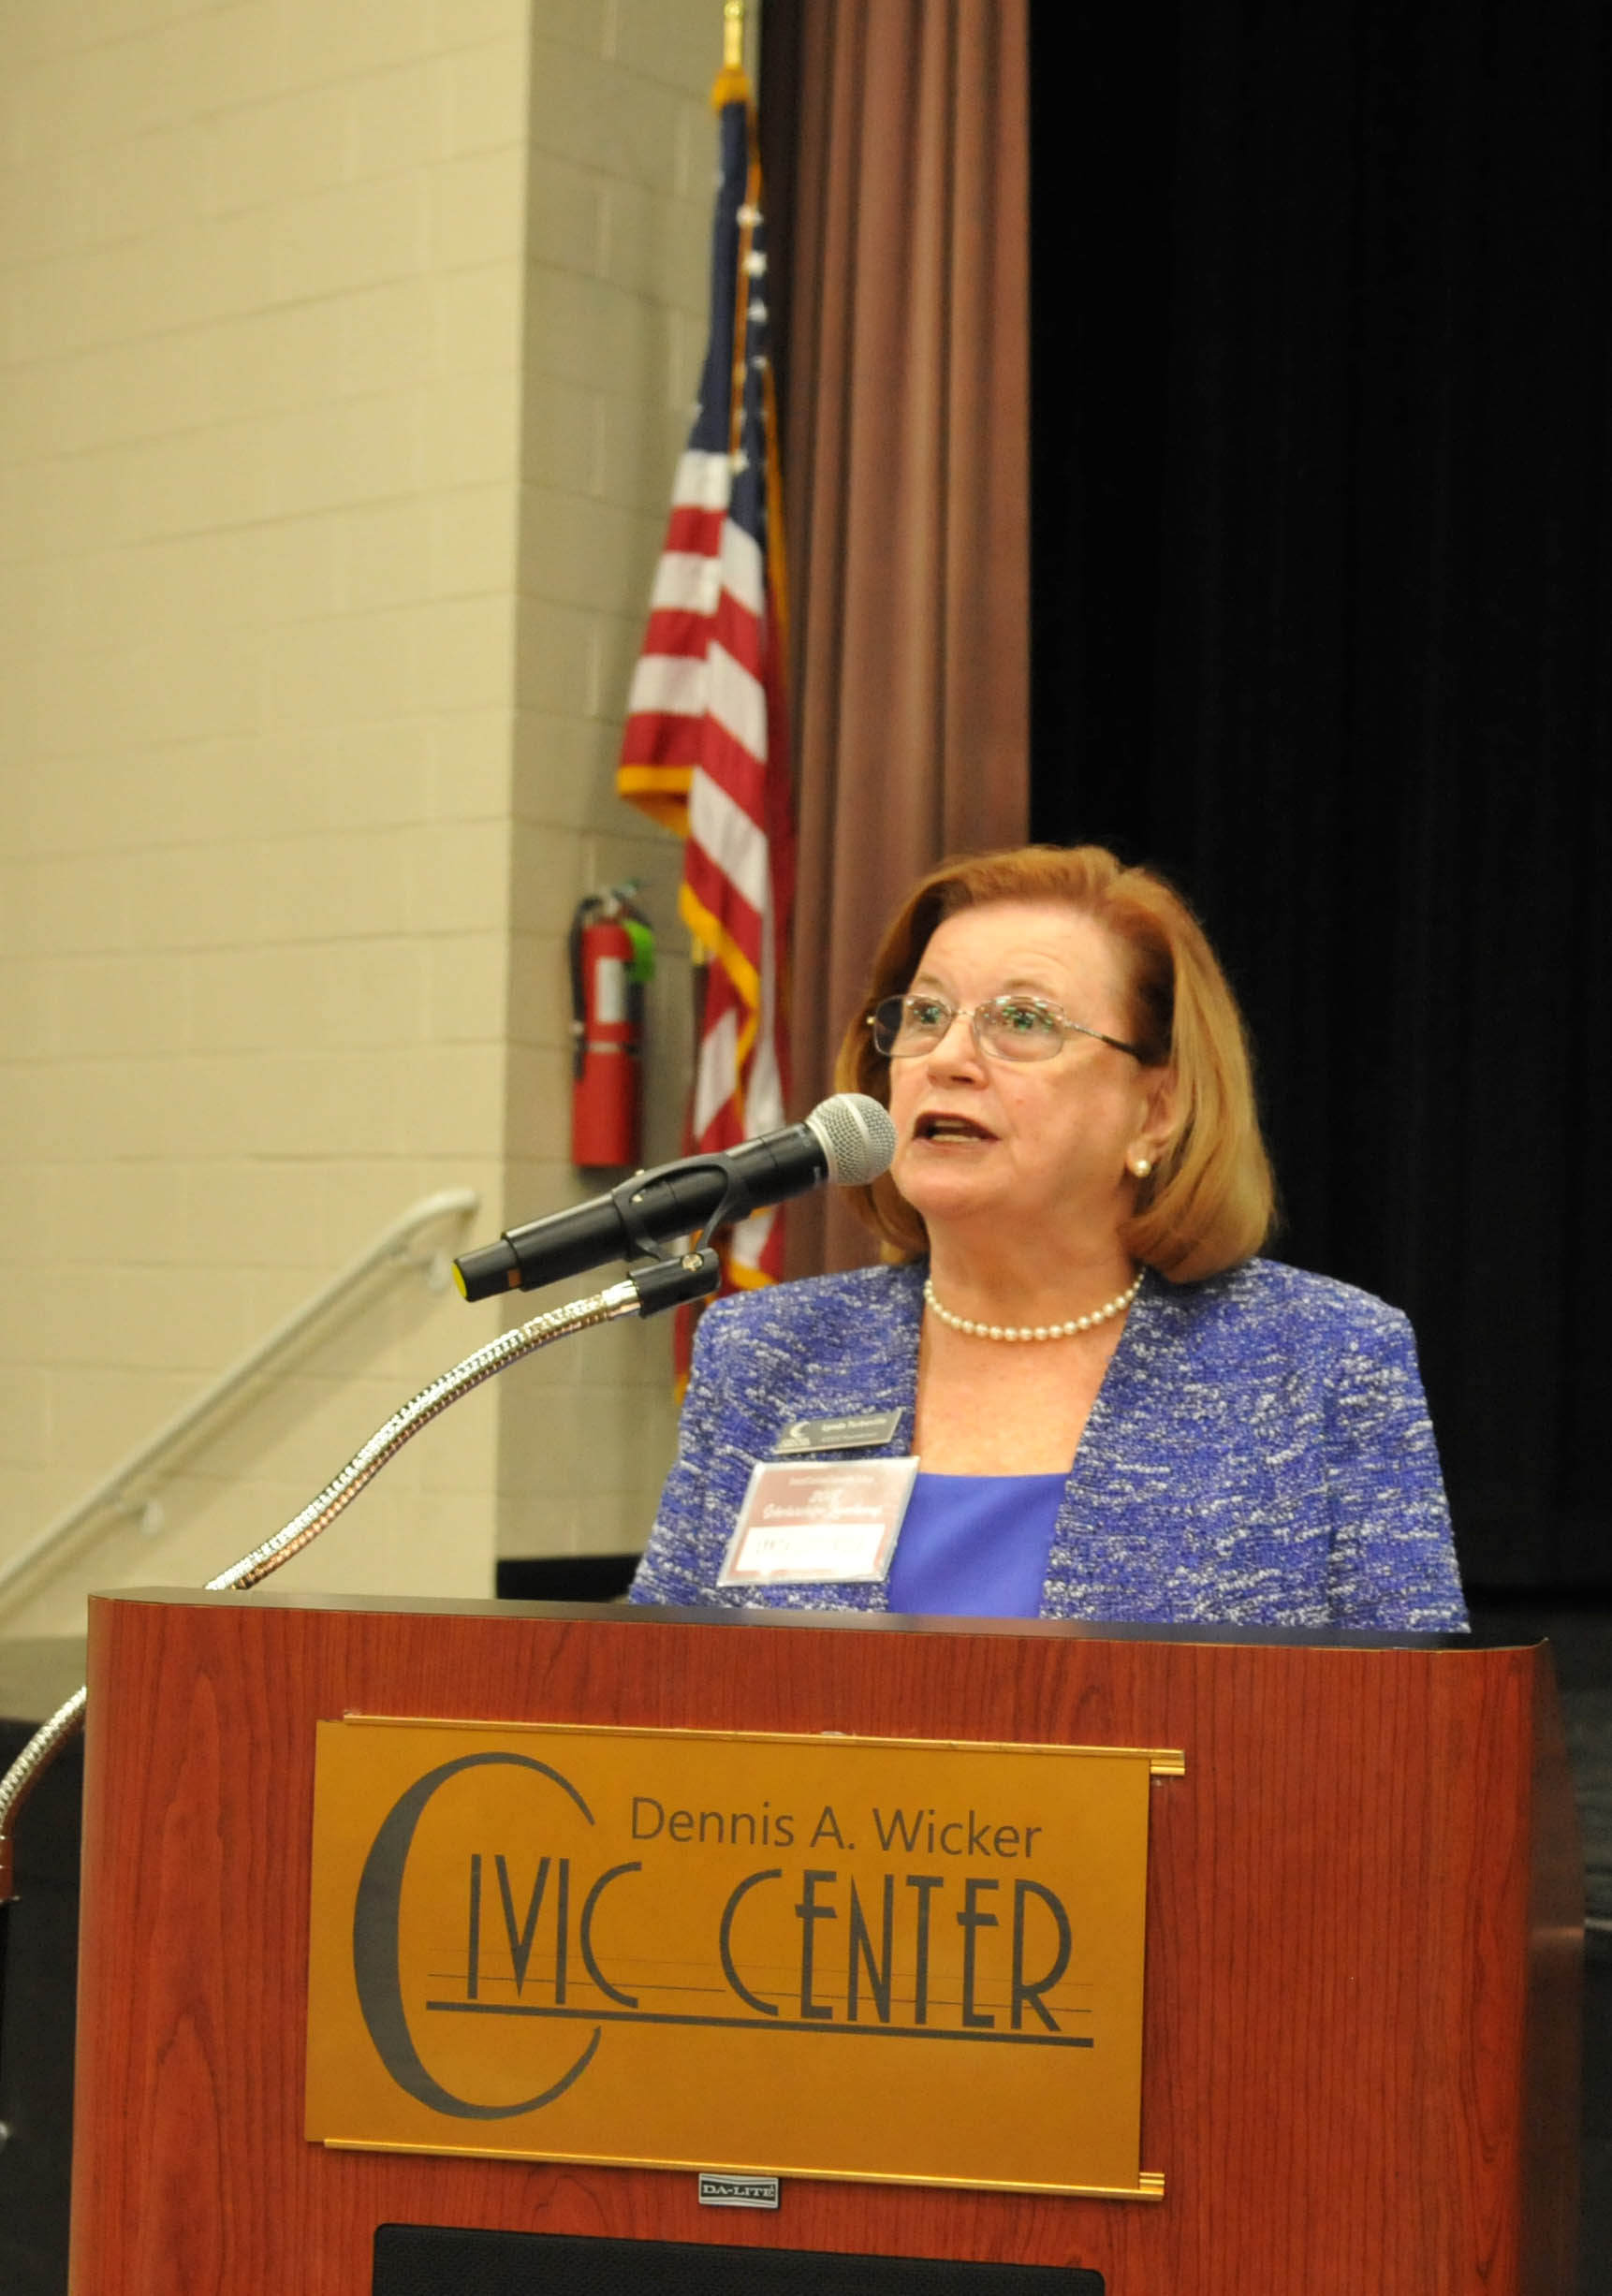 Click to enlarge,  Lynda Turbeville, CCCC Foundation Vice President, Resource Development, provided welcoming remarks during the Central Carolina Community College Foundation Scholarship Luncheon on Wednesday, Nov. 14, at the Dennis A. Wicker Civic & Conference Center.